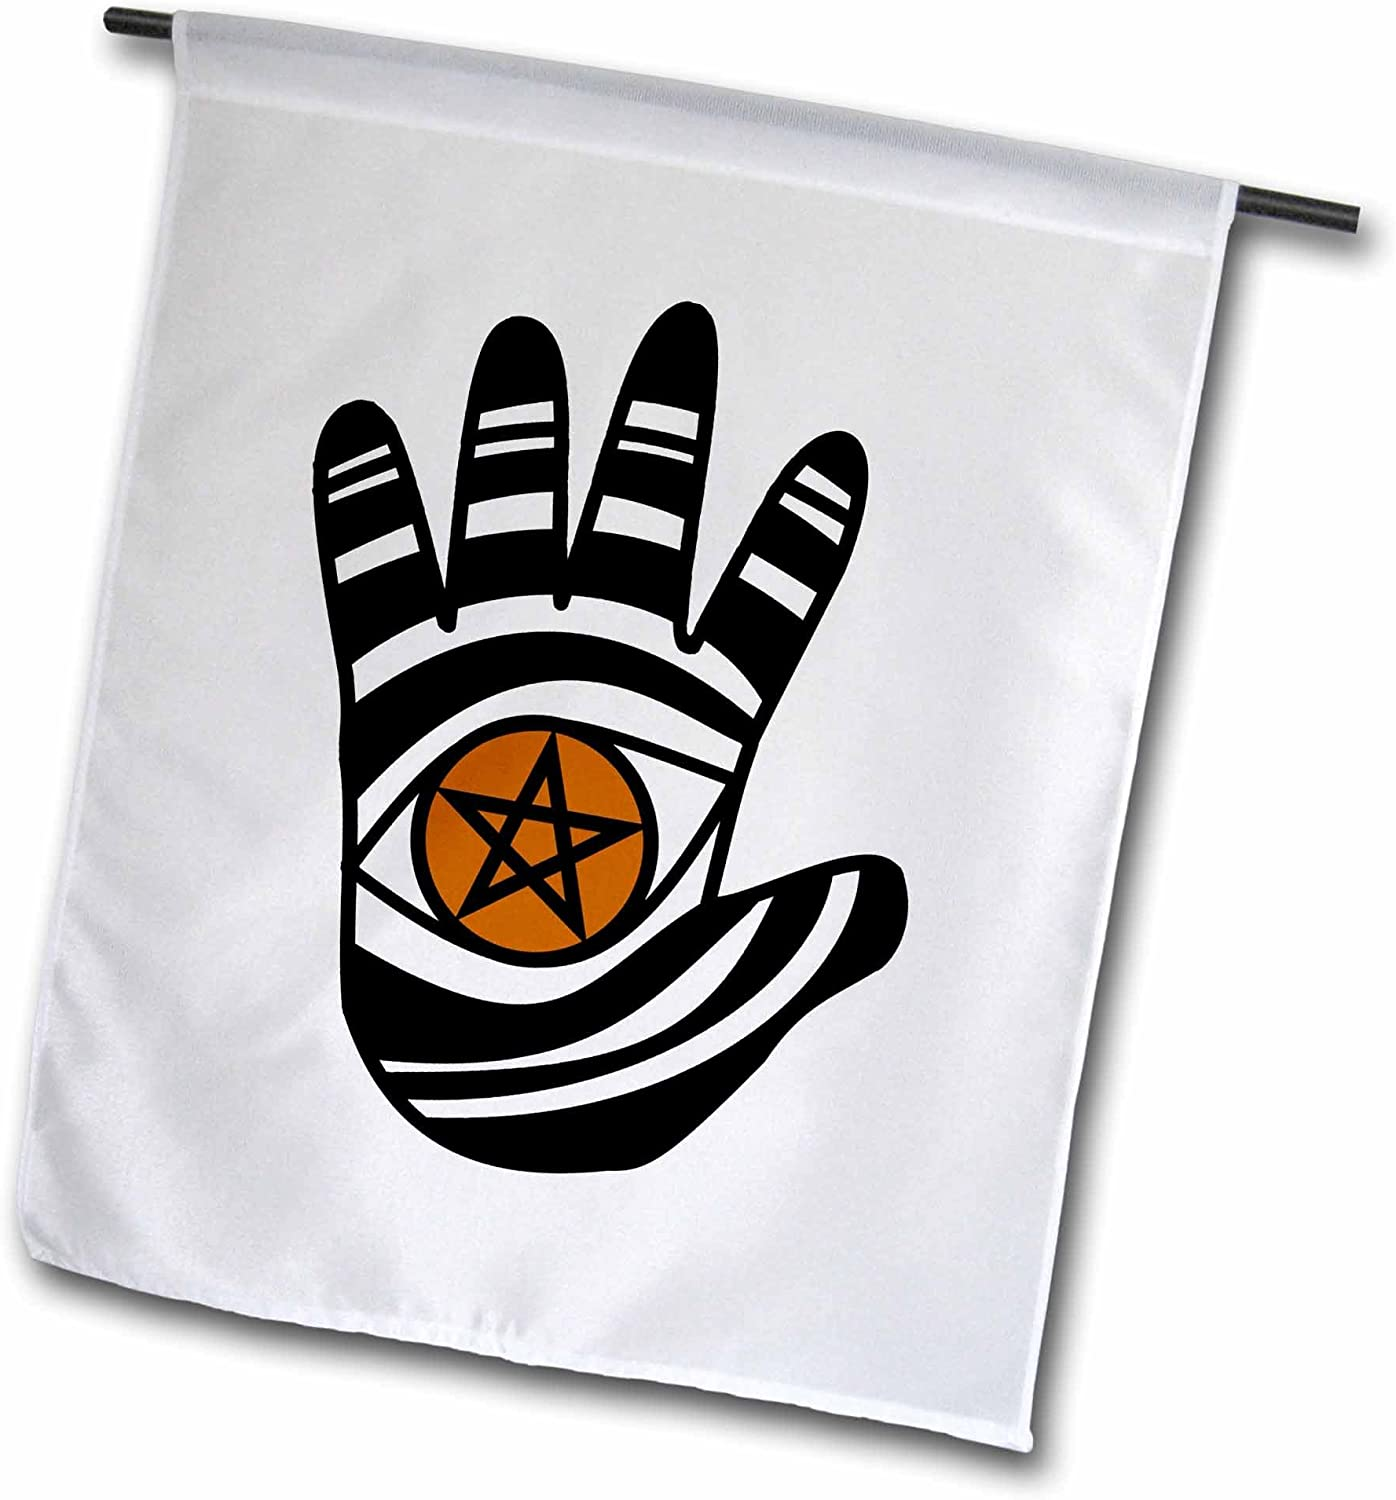 3dRose fl_23183_1 Pentacle Hand Pagan Witchcraft Tribal Wicca Symbol Garden Flag, 12 by 18-Inch